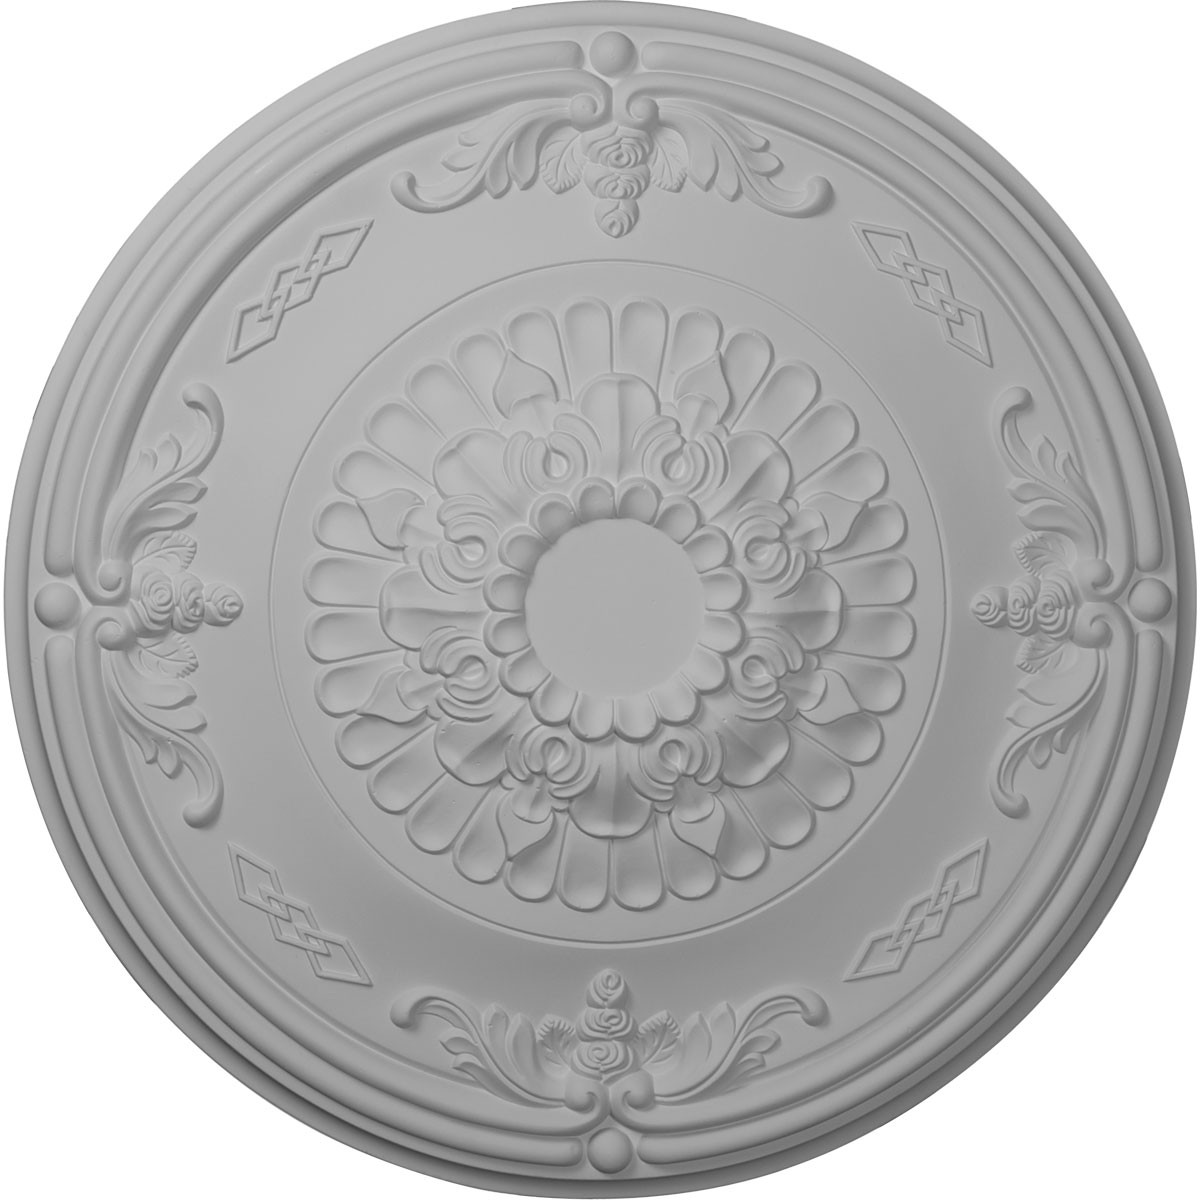 """EM-CM27AT - 26 1/4""""OD x 3 1/4""""P Athens Ceiling Medallion (Fits Canopies up to 3 5/8"""")"""